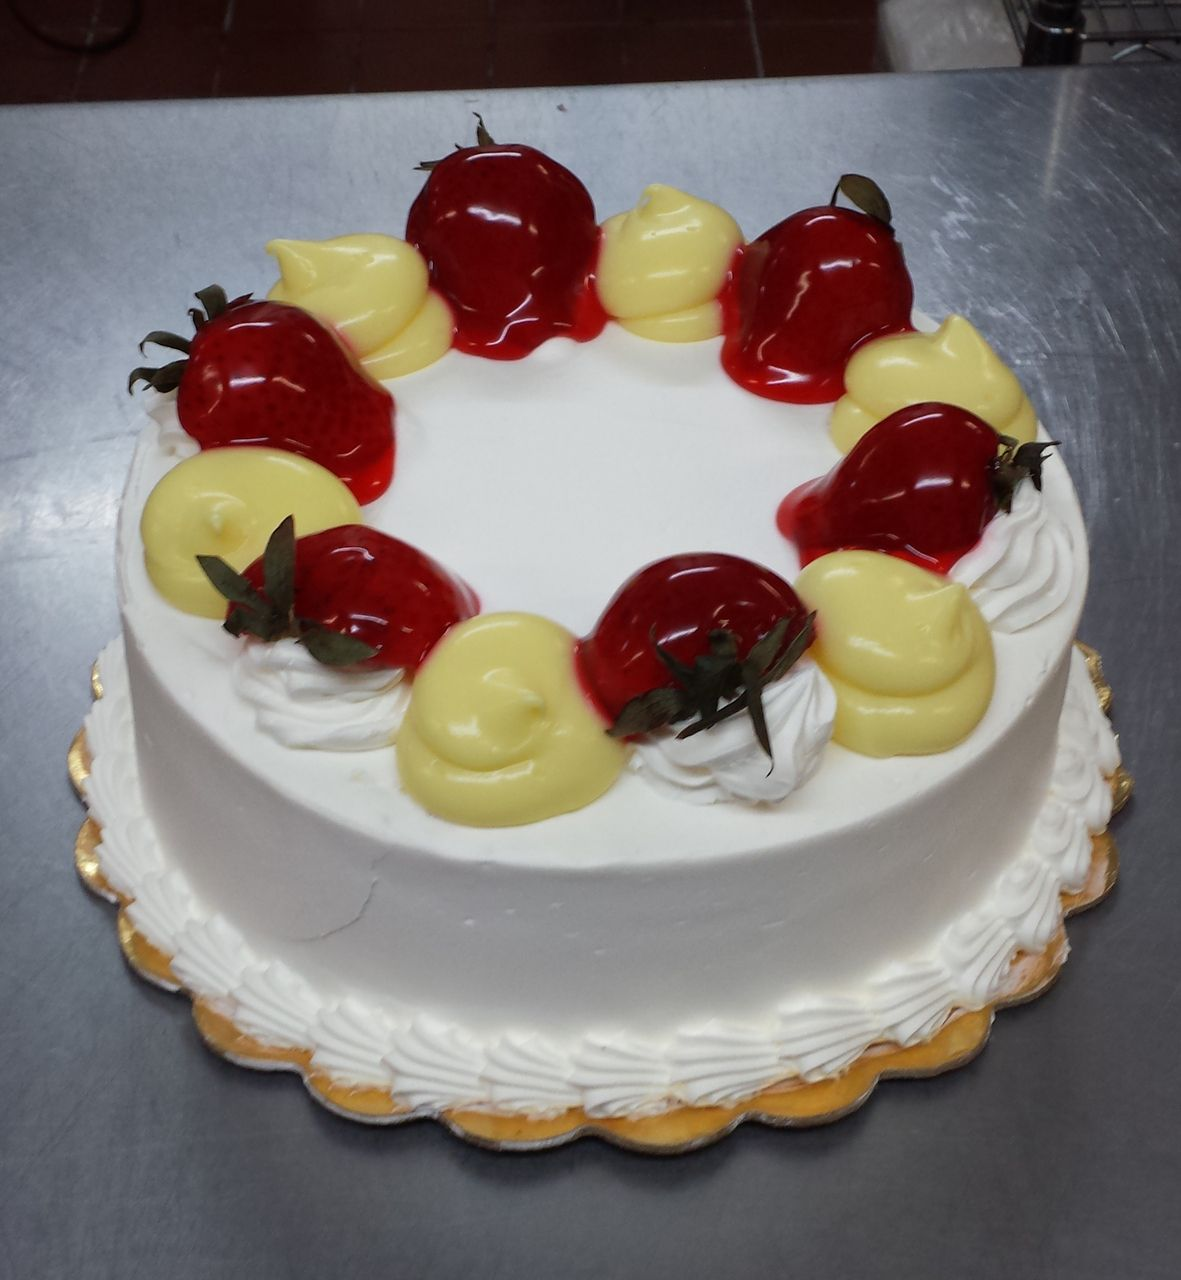 Tres Leches Birthday Cake With Fruit B Tres Leches Cake B Mixed